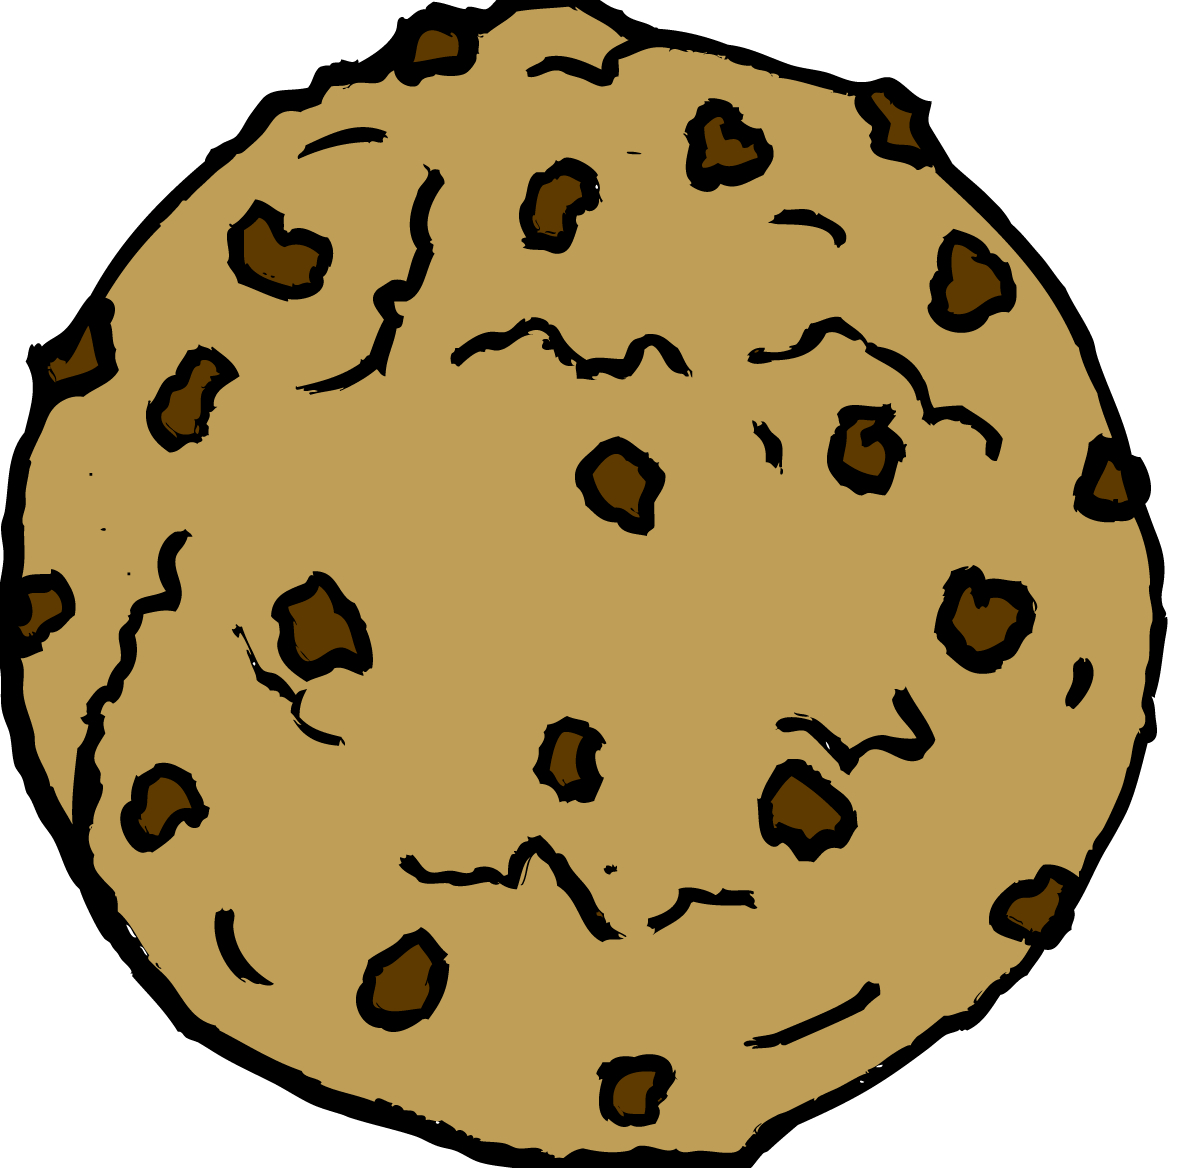 Cracker clipart cookie box. Chocolate chip cilpart nice